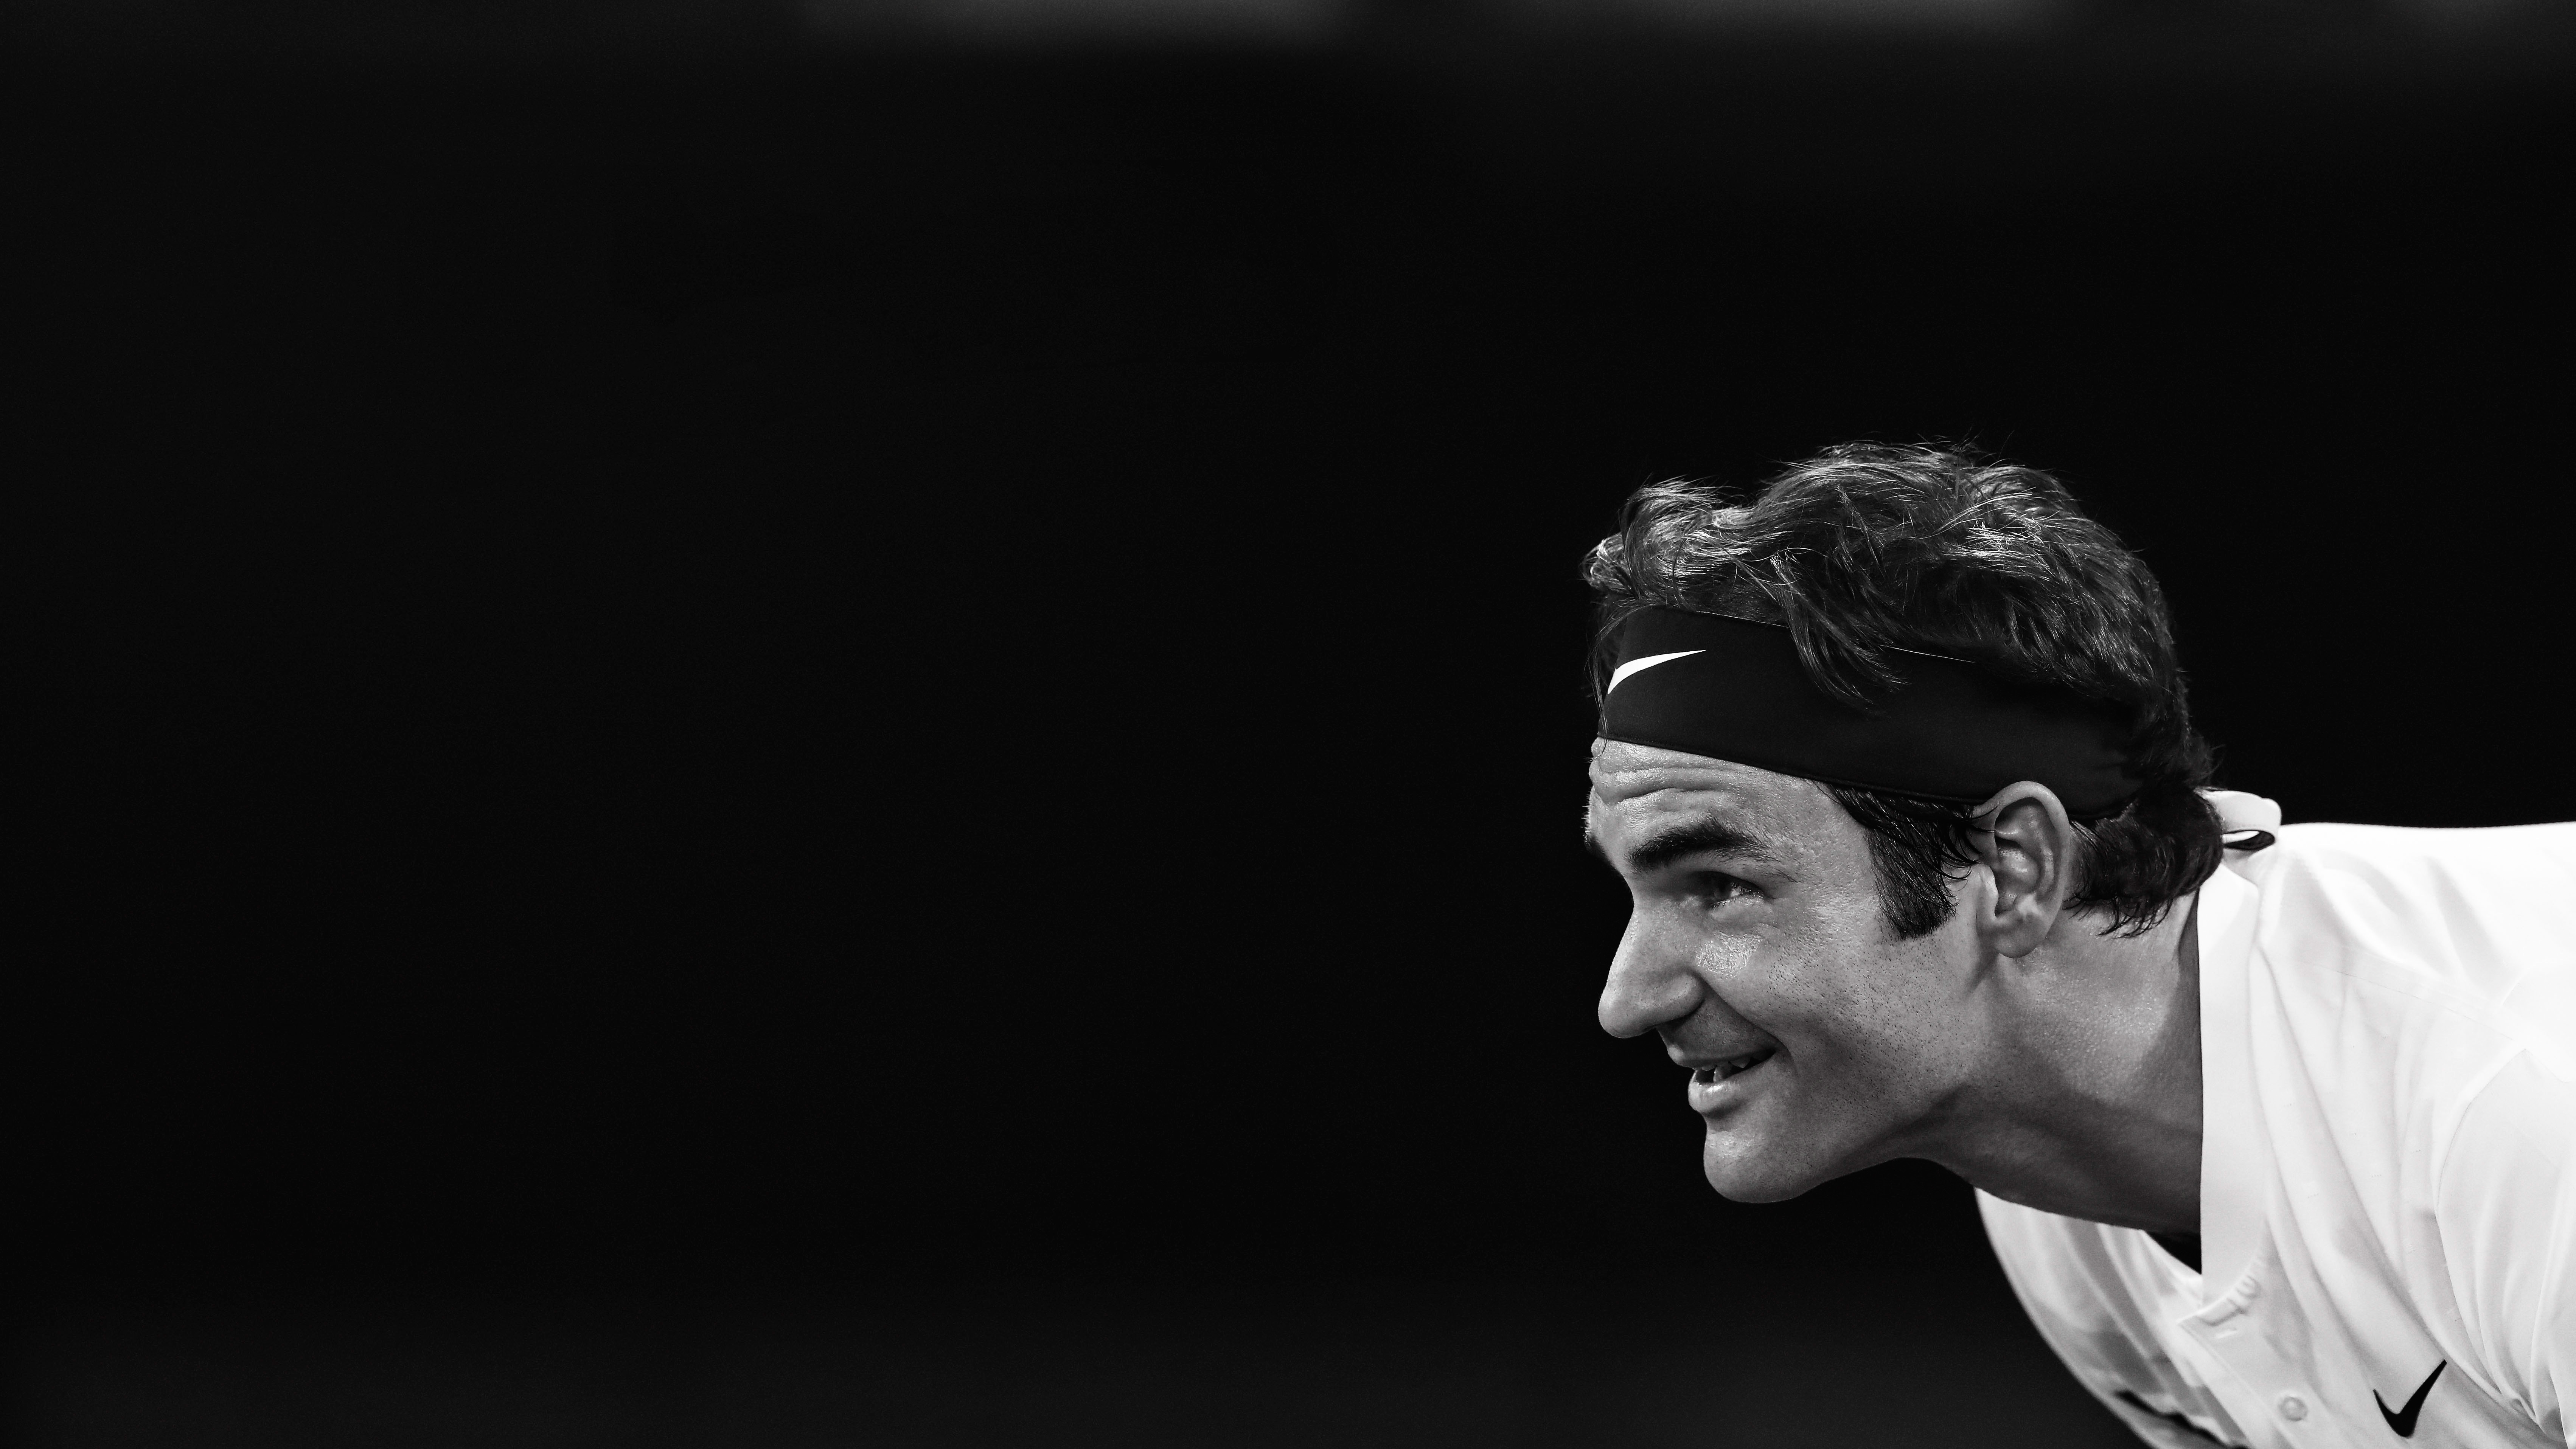 Roger Federer Hd: Roger Federer 5k, HD Sports, 4k Wallpapers, Images